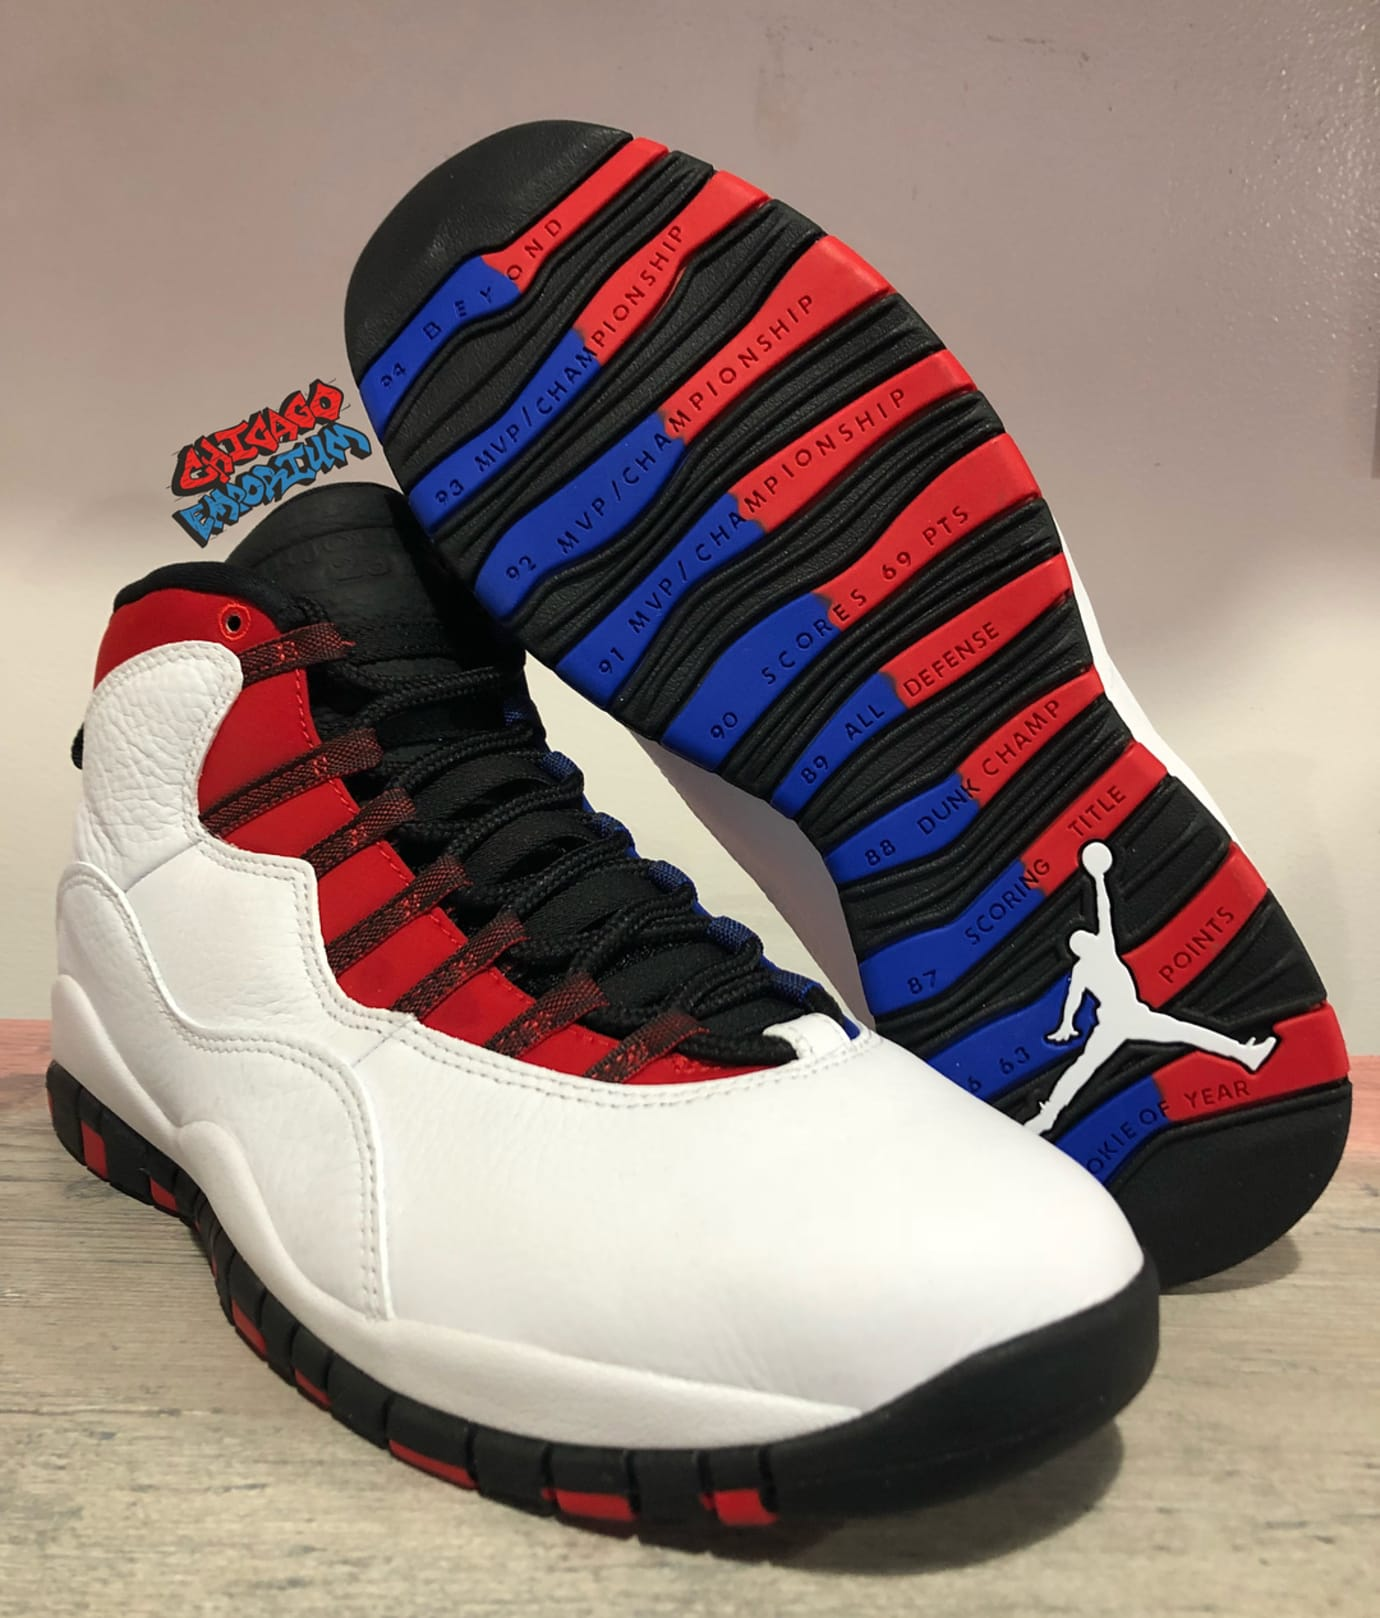 quality design d5400 8c830 Air Jordan 10 X Westbrook Olympians High School Release Date ...